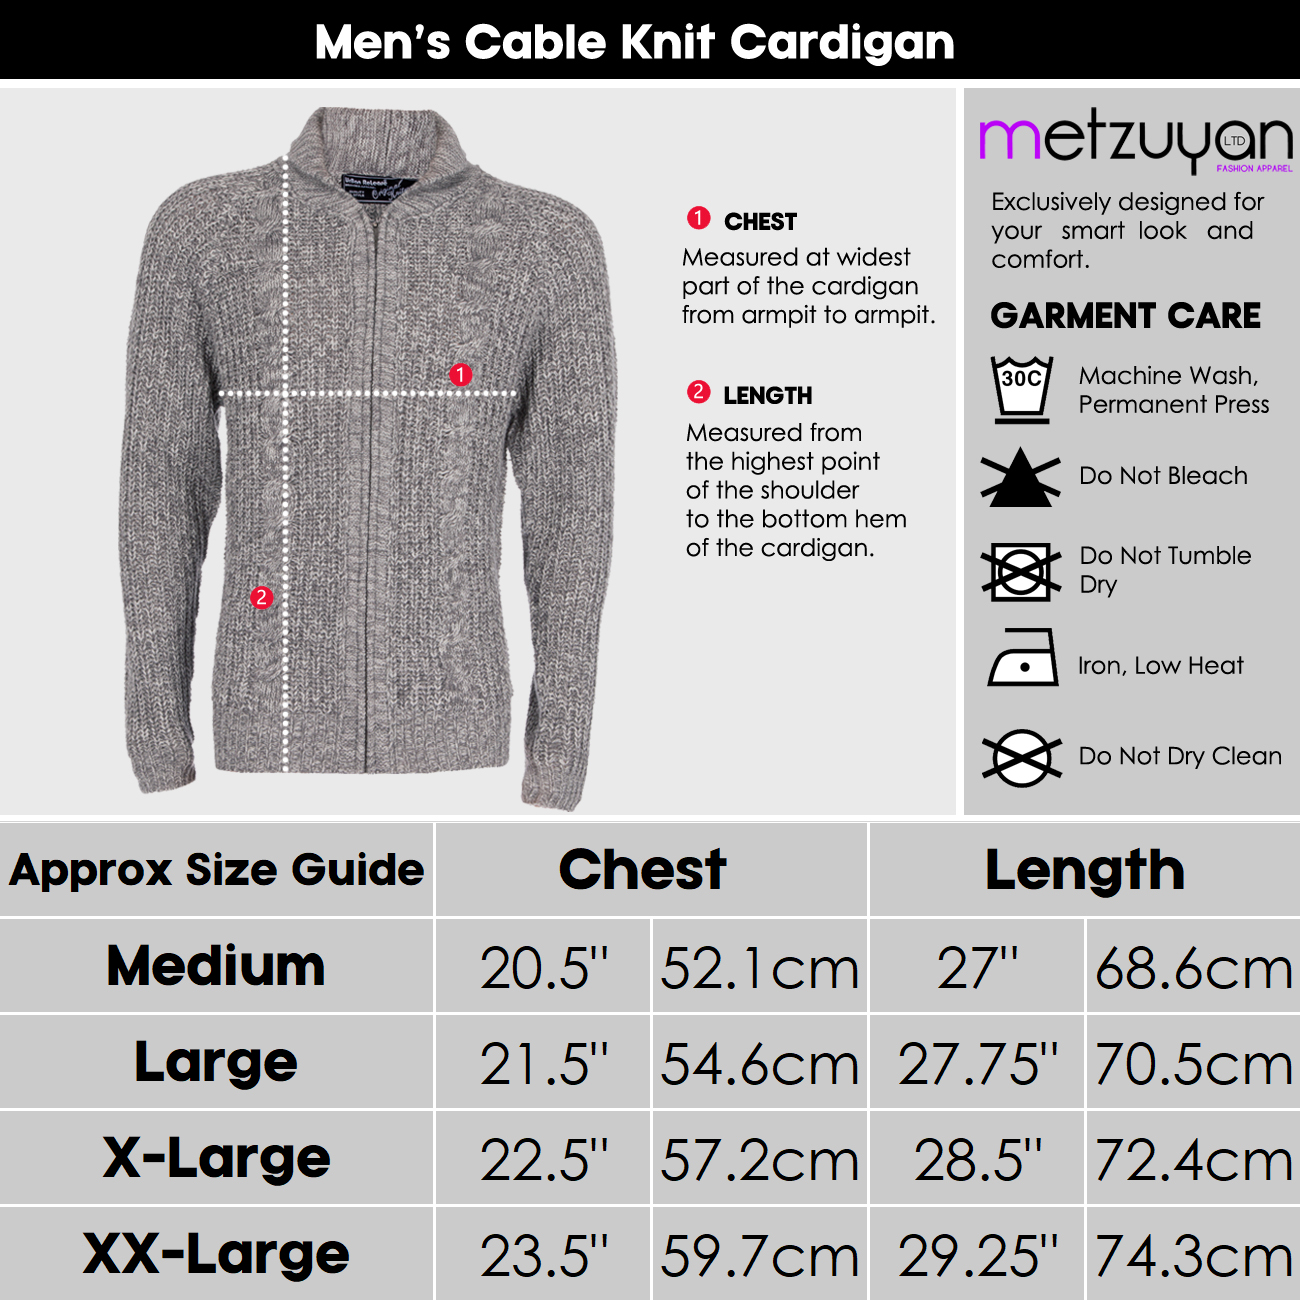 Homme-Zip-Cardigan-Gris-Bleu-marine-Full-Zip-Up-Stand-collier-cable-tricot-pull-UK miniature 4